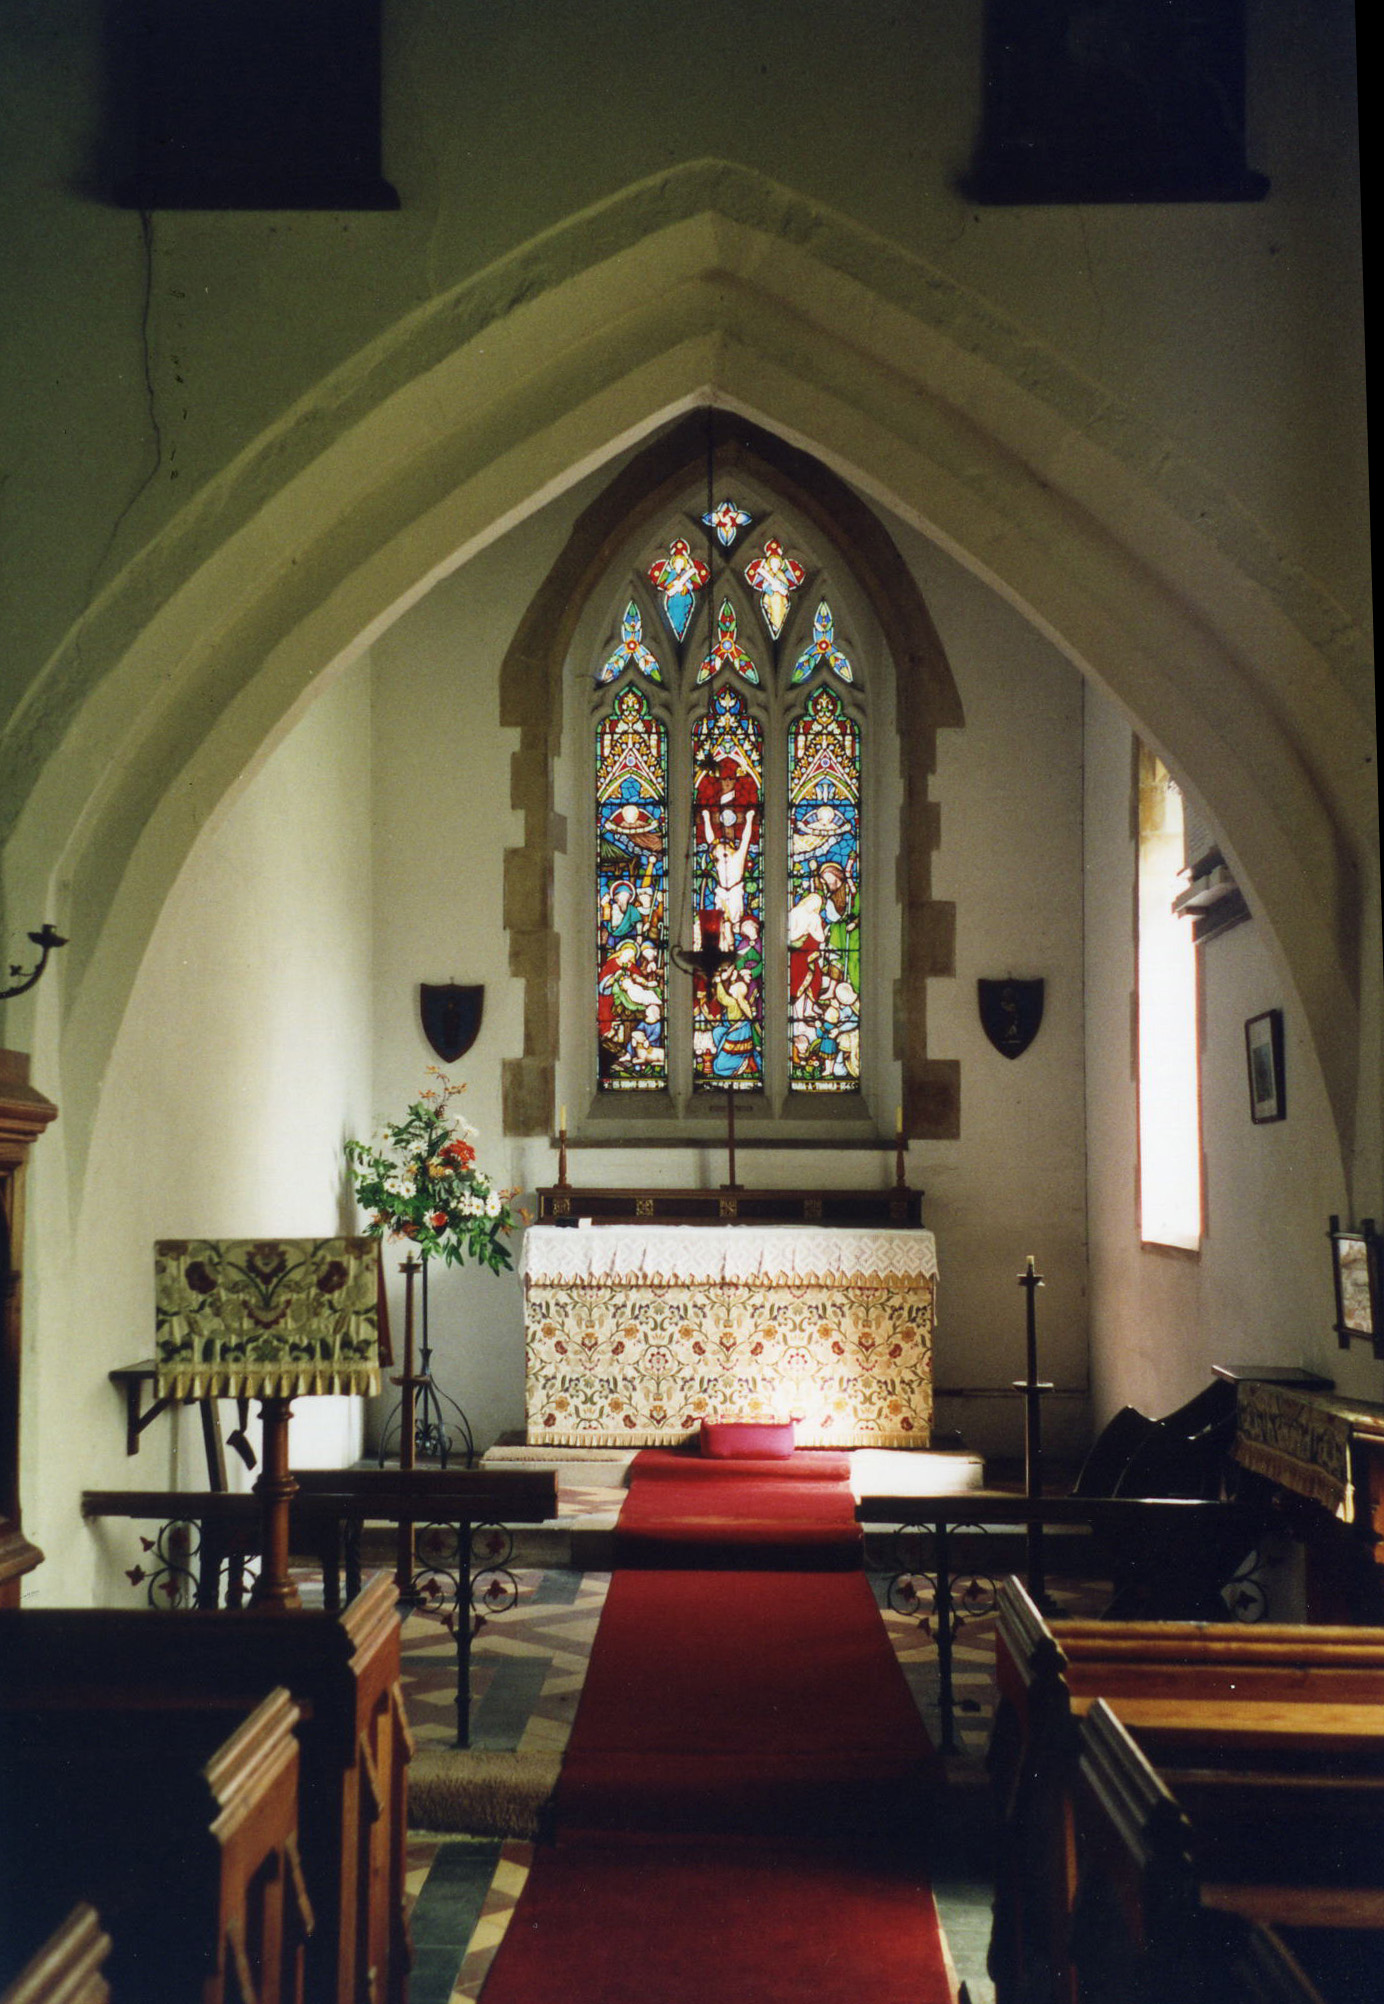 St. Nicholas church nave